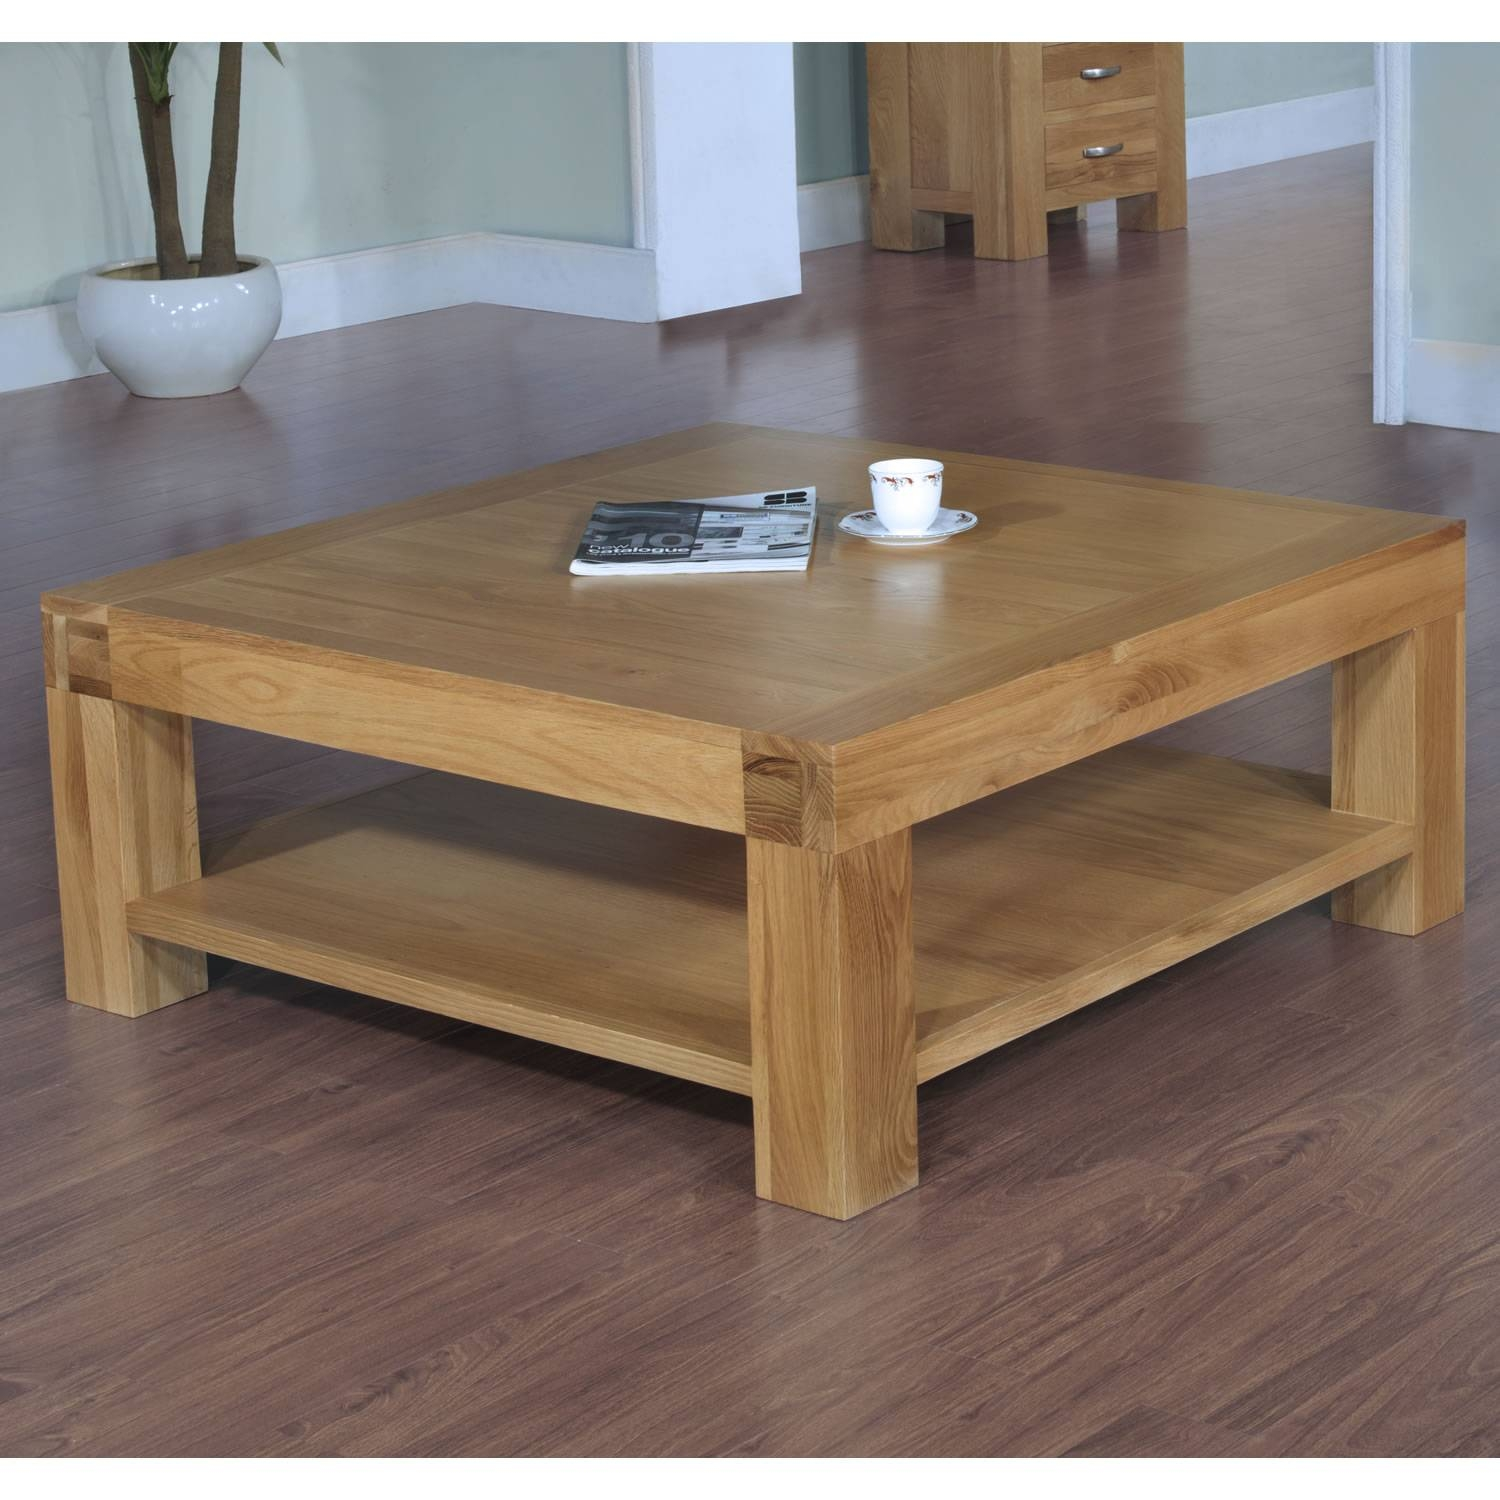 Square Rustic Coffee Table : Rustic Coffee Tables For Coffee Shop in Square Wooden Coffee Table (Image 11 of 15)